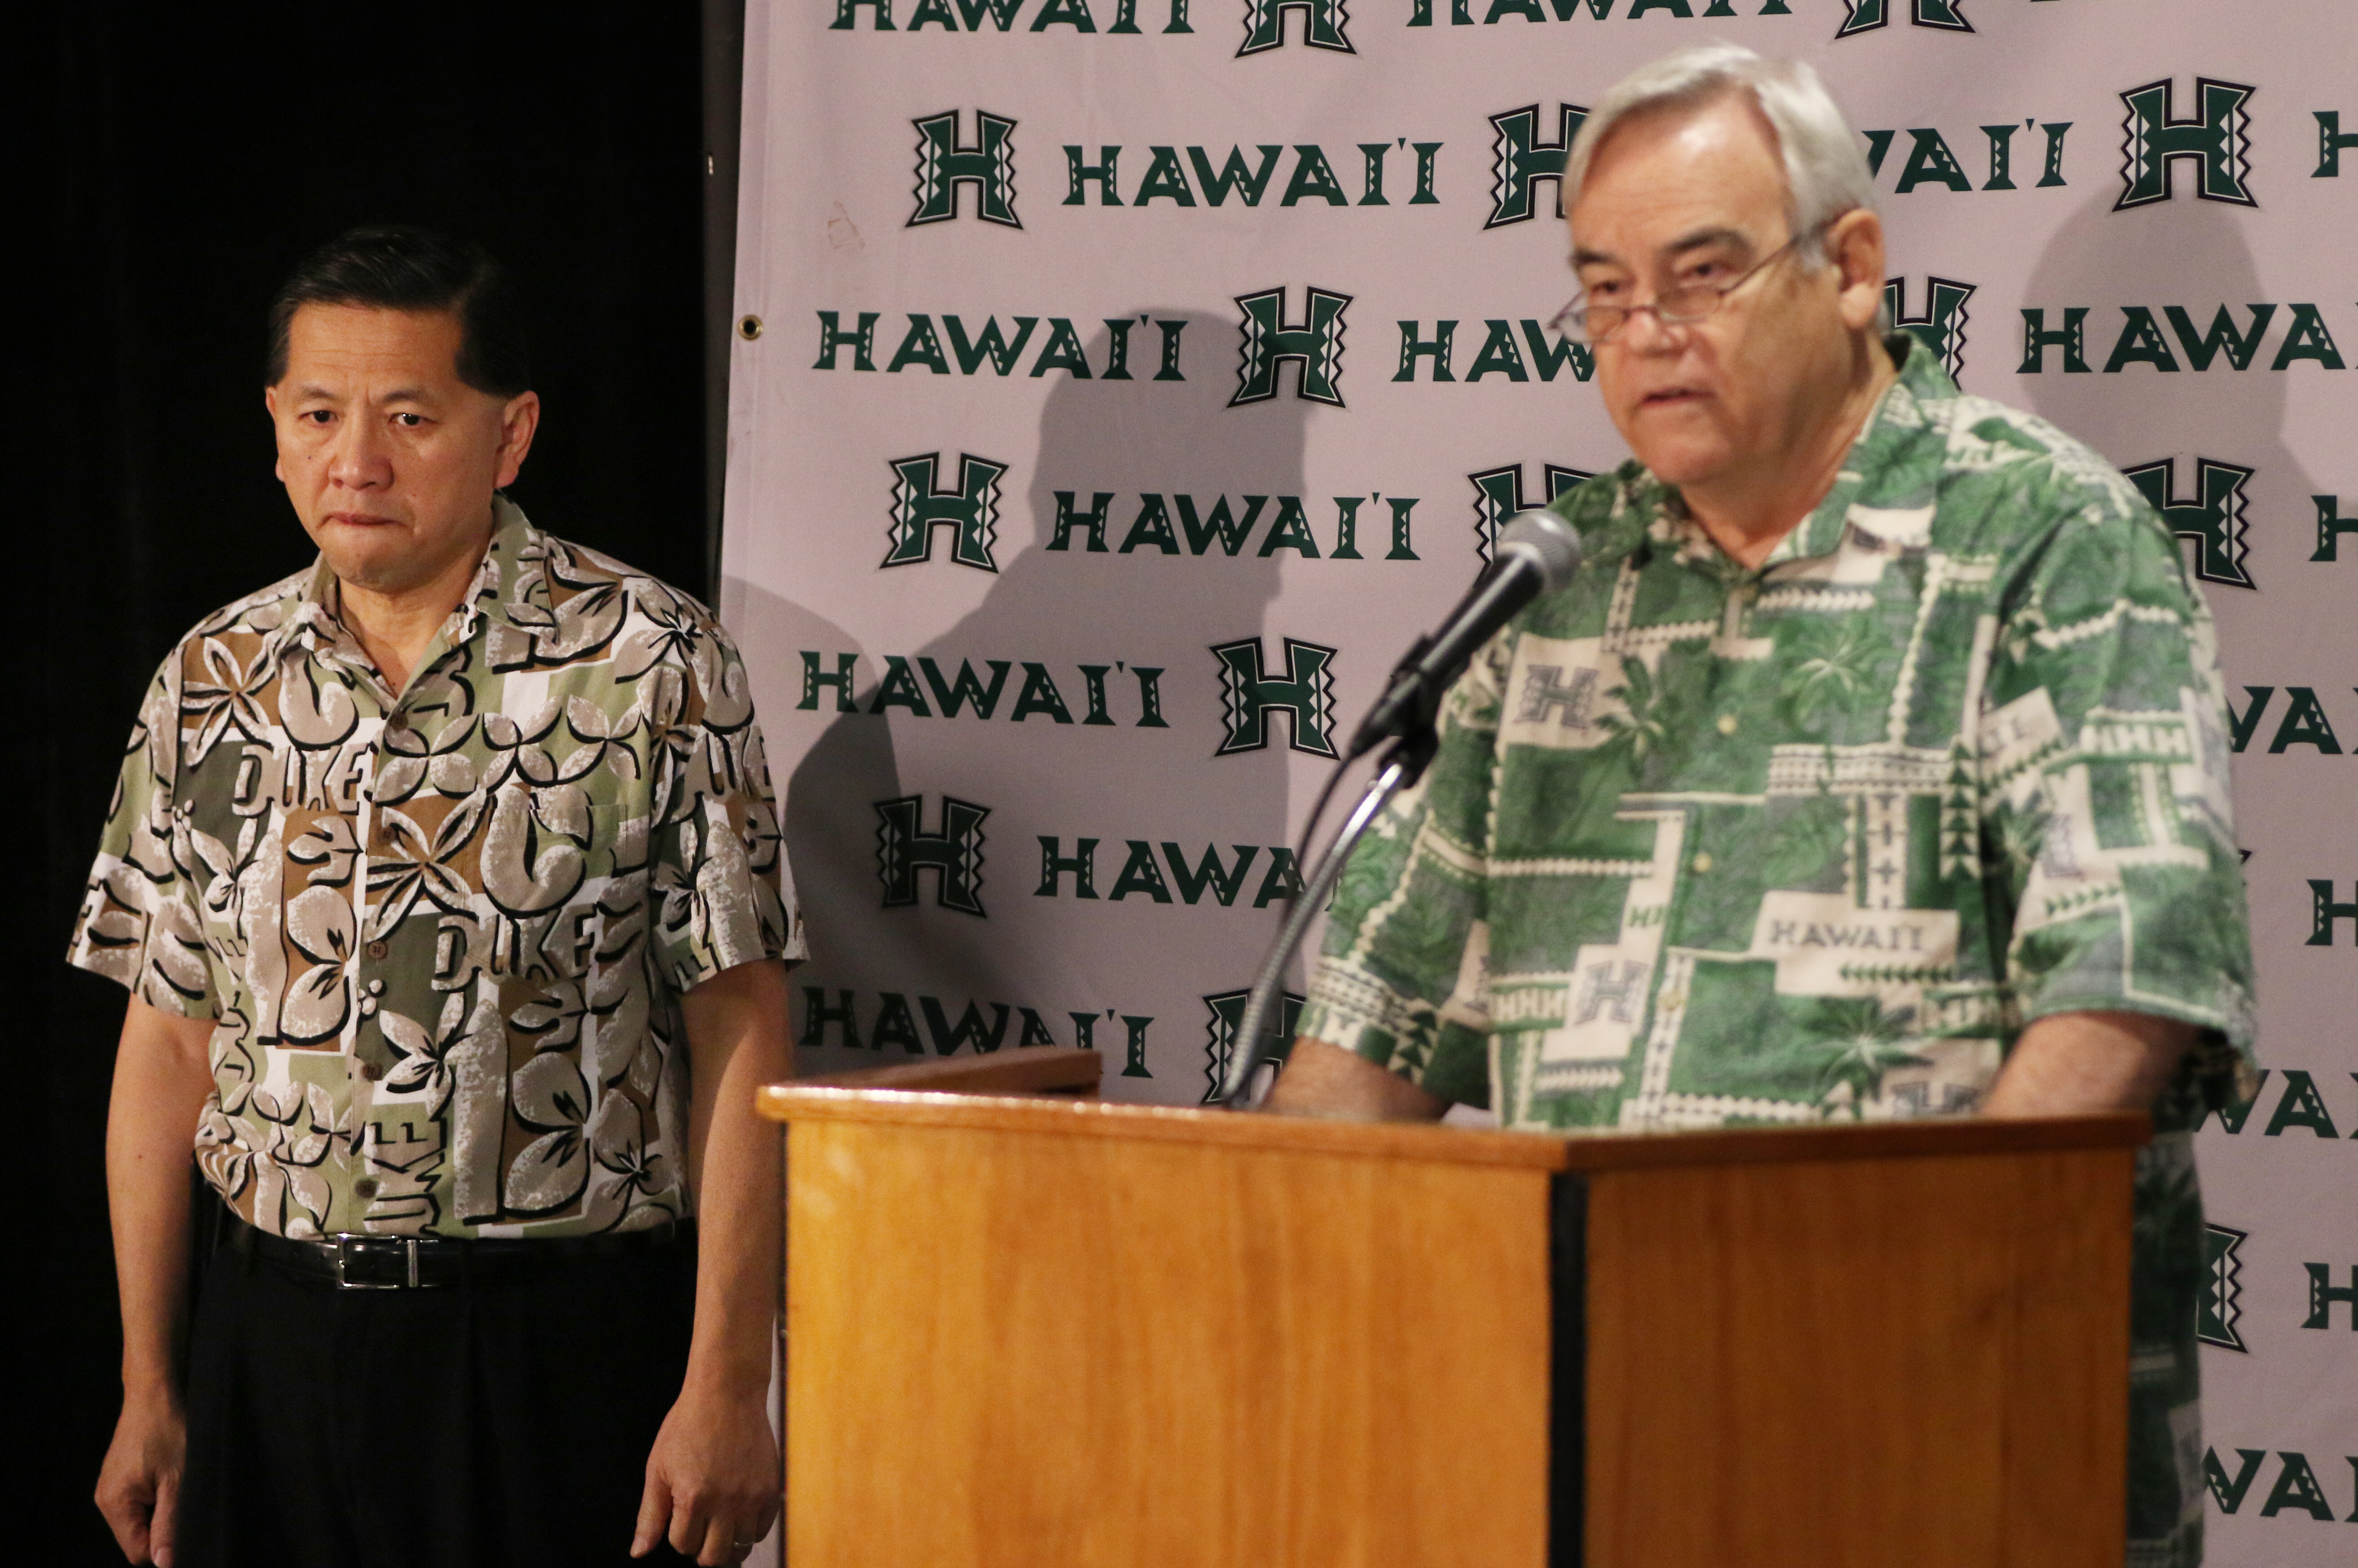 Robert Bley-Vroman, Chancellor, University of Hawaii at Manoa speaks to media after University of Hawaii Athletic Director Ben Jay announced he is resigning from his position as athletic director.  Stan Sheriff Center. Honolulu, Hawaii.  9 dec 2014. photograph Cory Lum